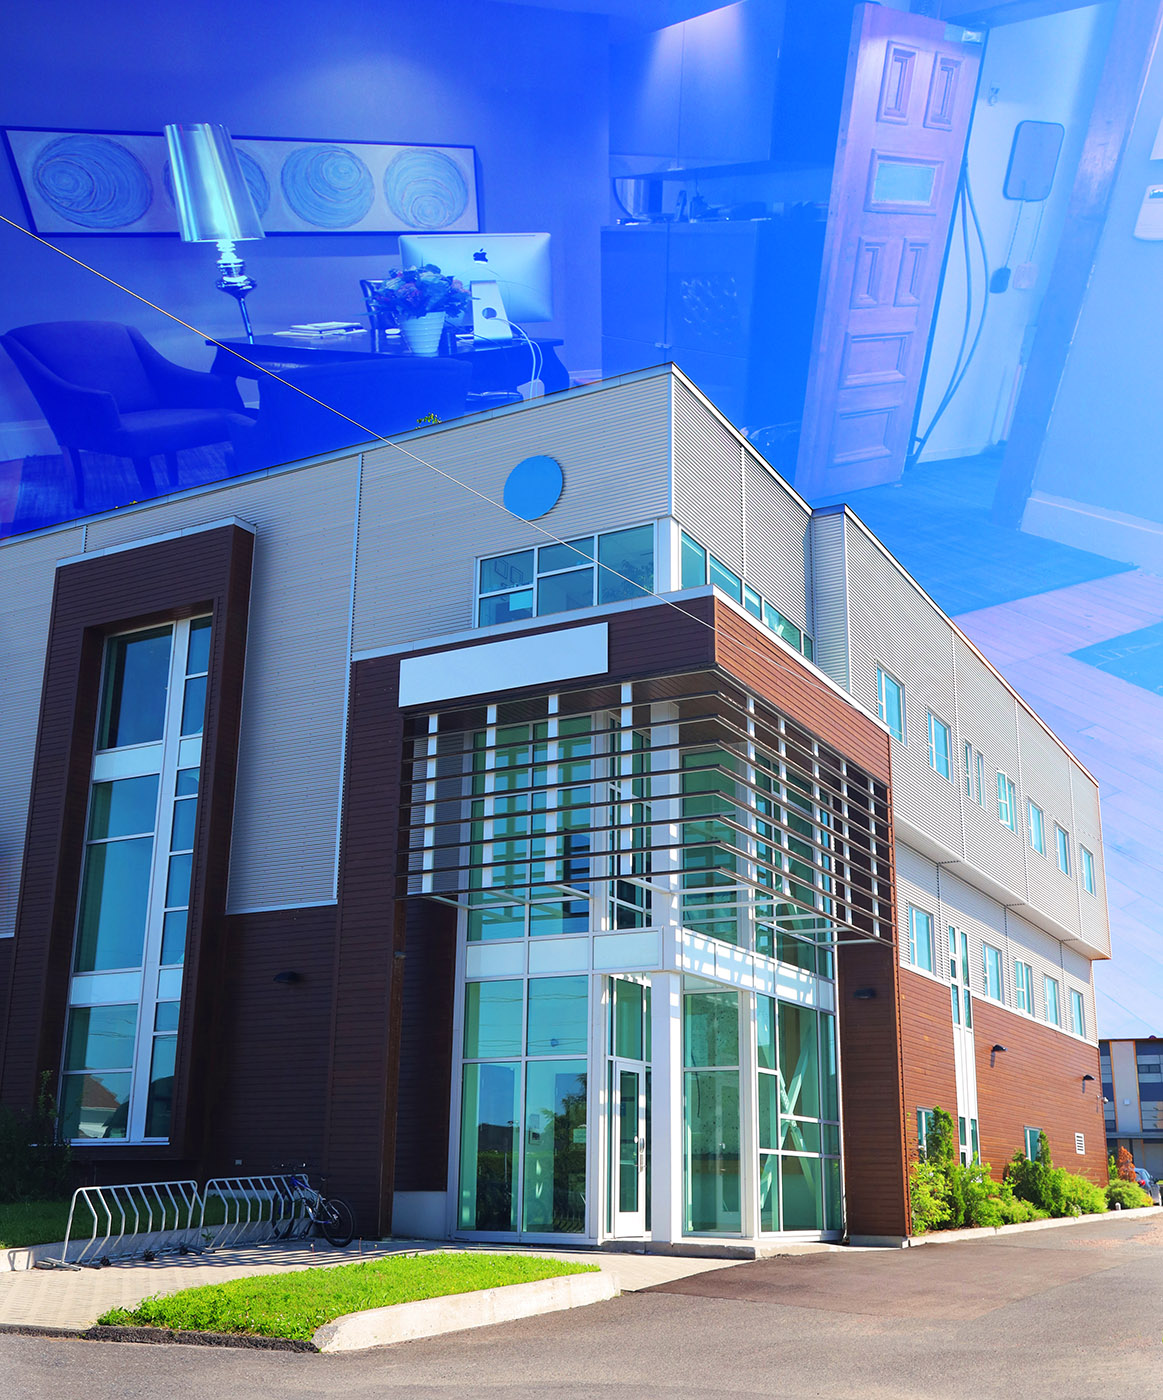 Modern Office Building - Colorful Stock Photos